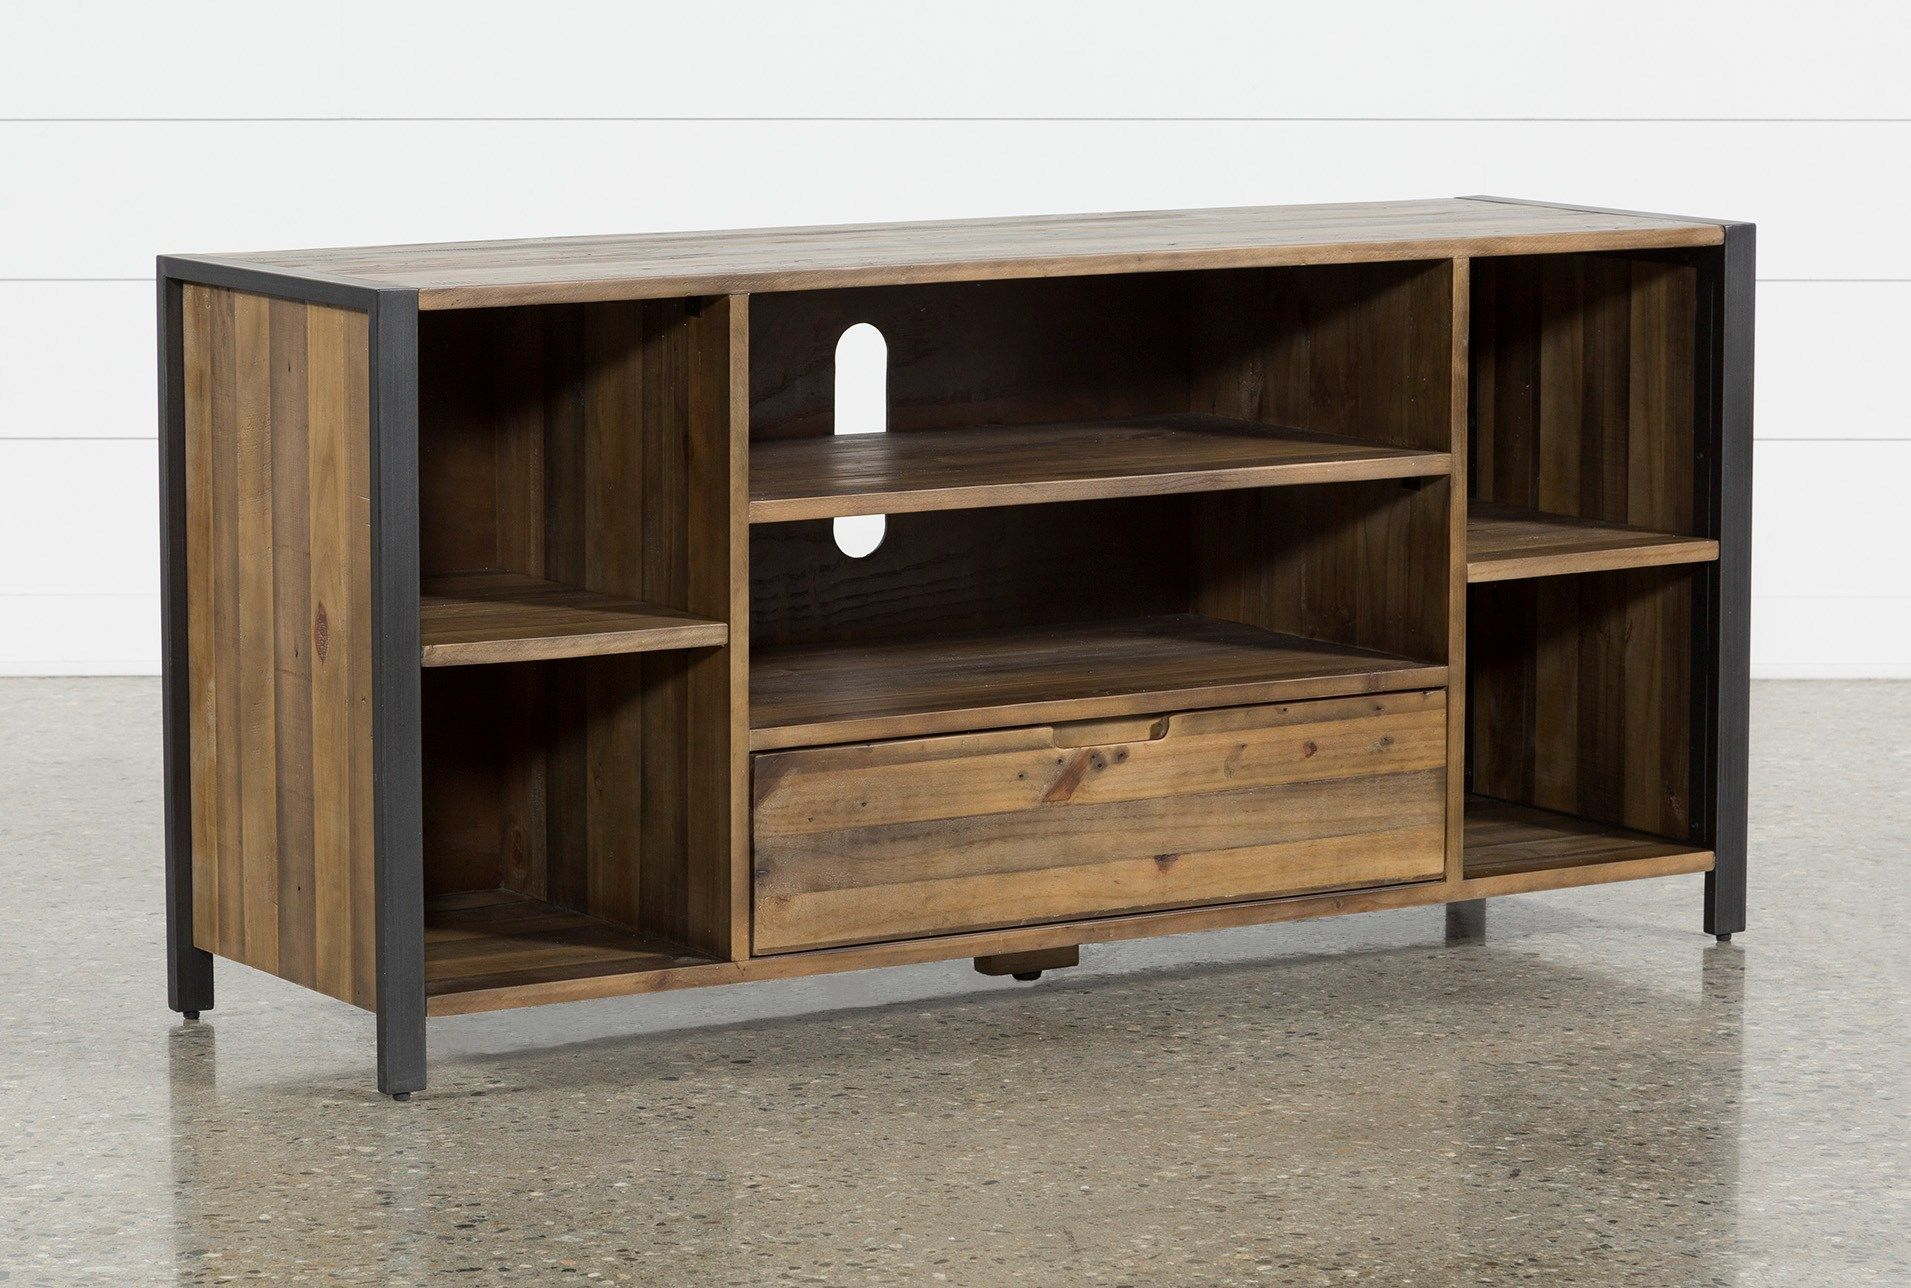 Marvin Rustic Natural 60 Inch Tv Stand 60 Inch Tv Stand Tv Stand 60 Tv Stand